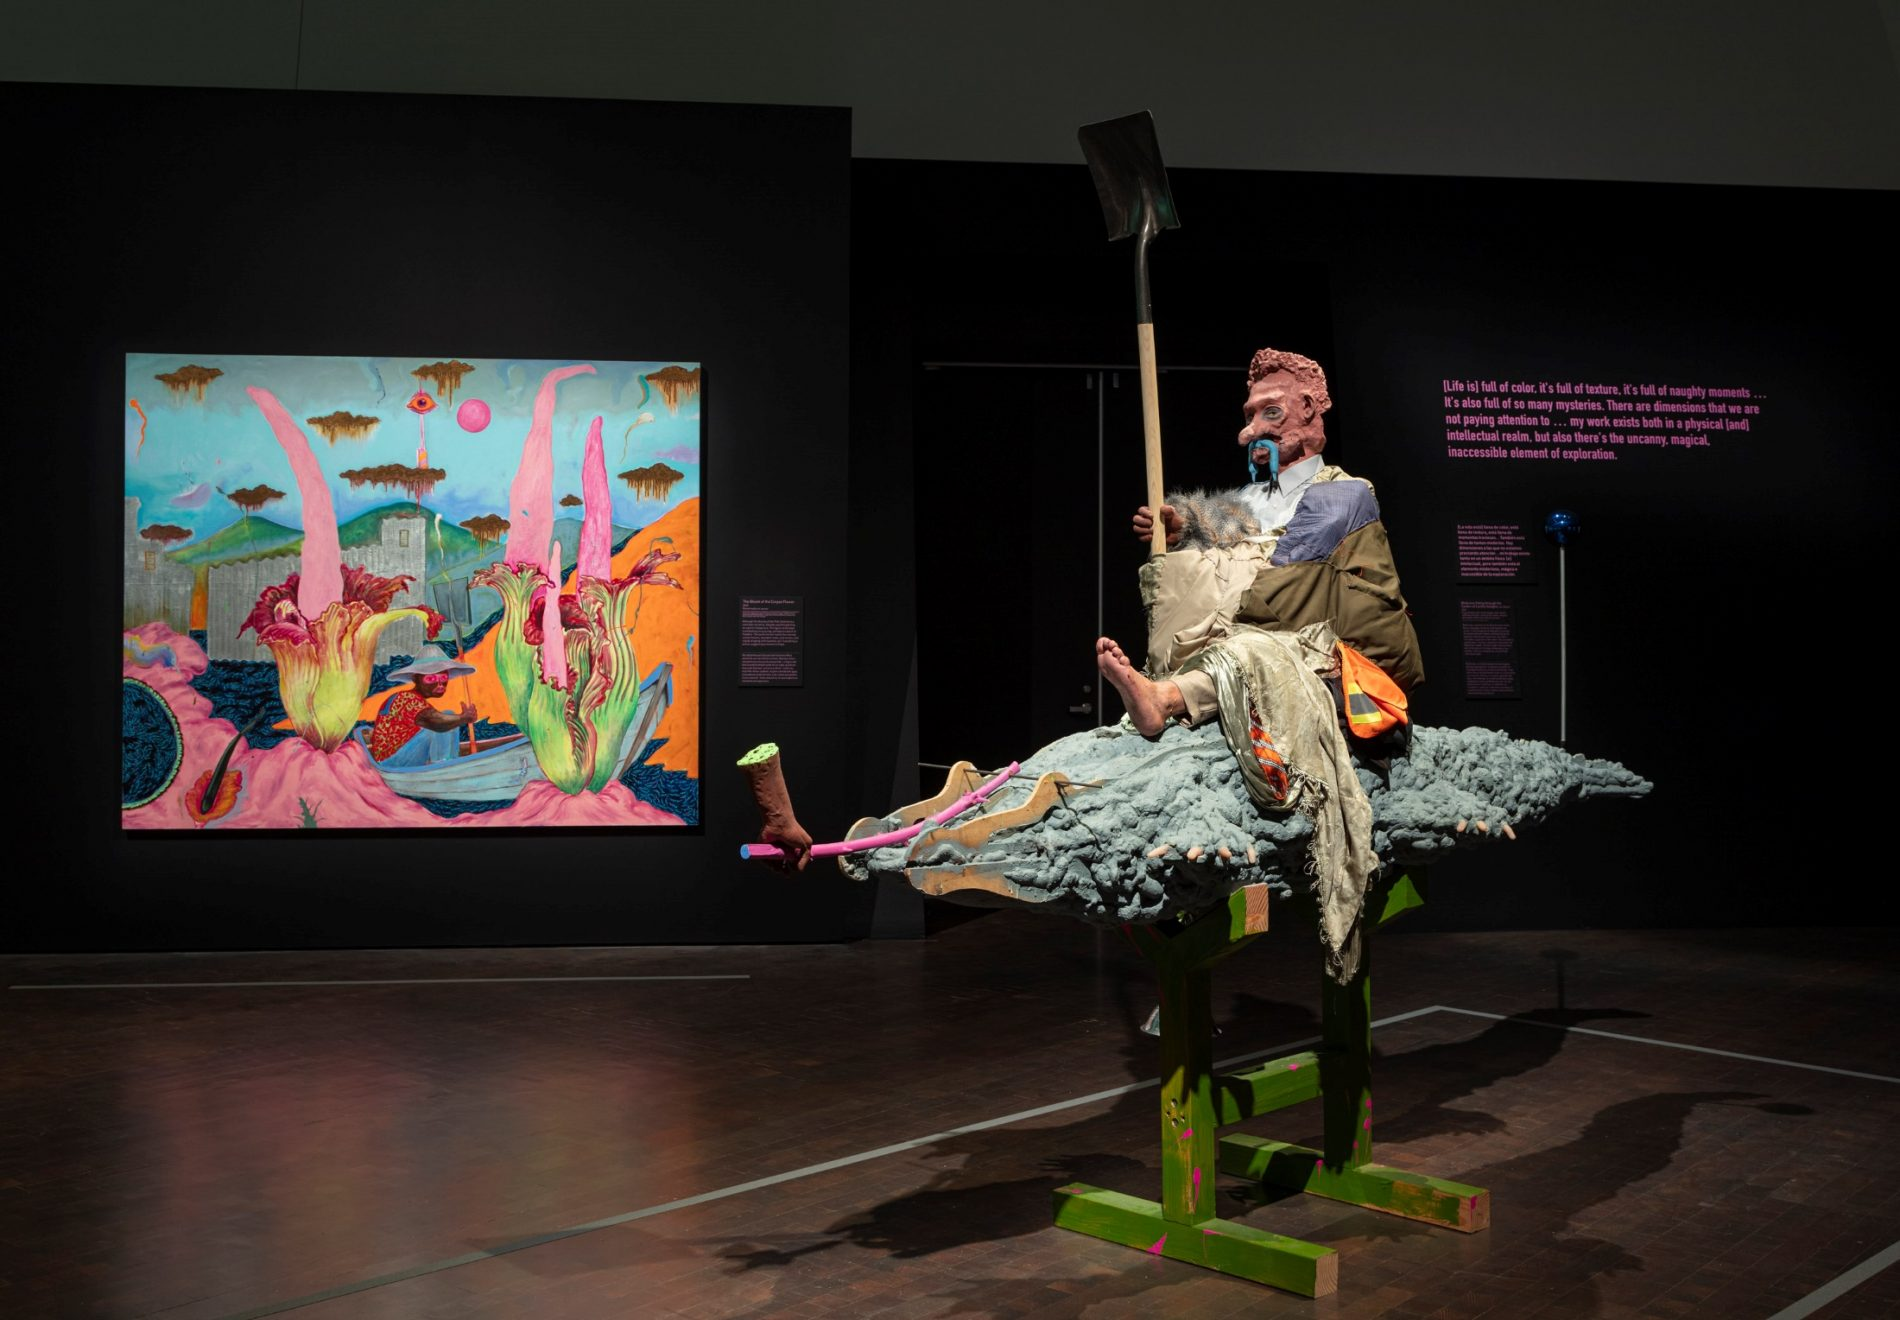 Denver Art Museum installation view of Simphiwe Ndzube: Oracles of the Pink Universe.